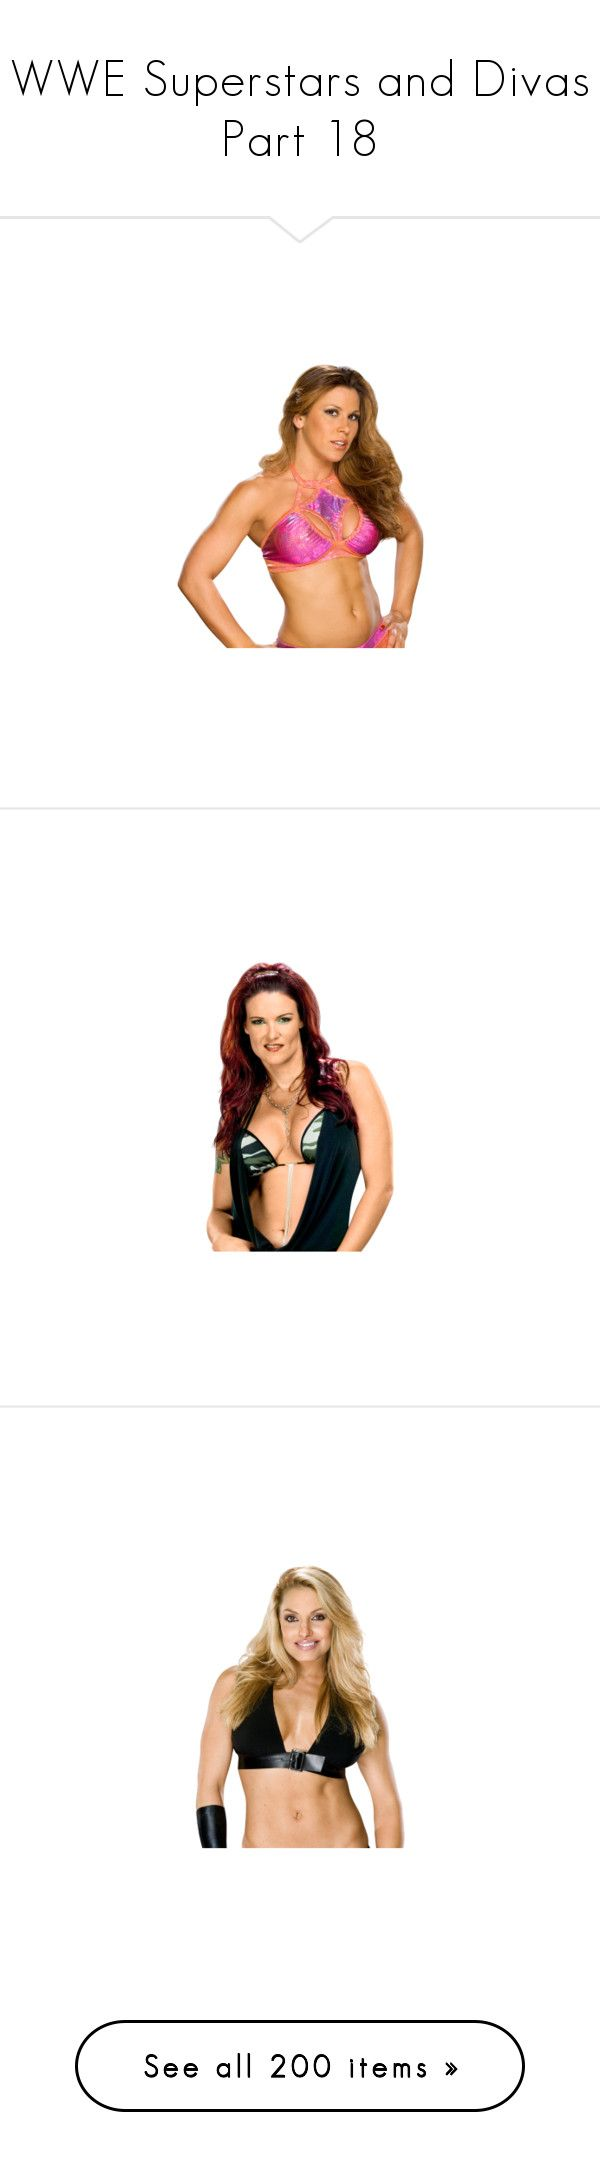 """WWE Superstars and Divas Part 18"" by belabmilagres ❤ liked on Polyvore featuring wwe, home, home decor, people, wrestling, divas, melina, finn balor, superstars and manip"